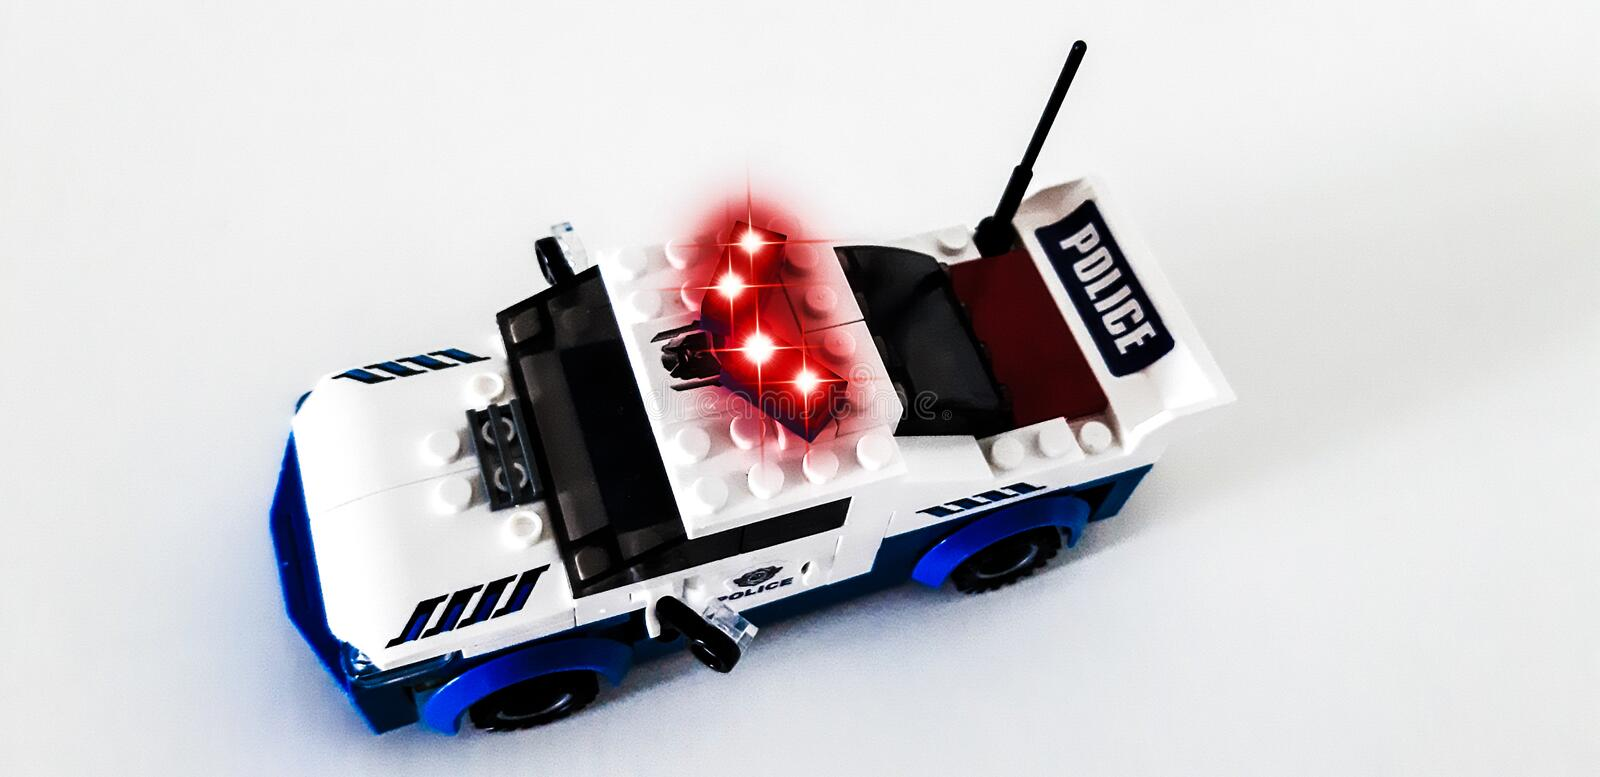 Titan form Heroes.From the details of the set, you can assemble a police robot or a police car. royalty free stock image